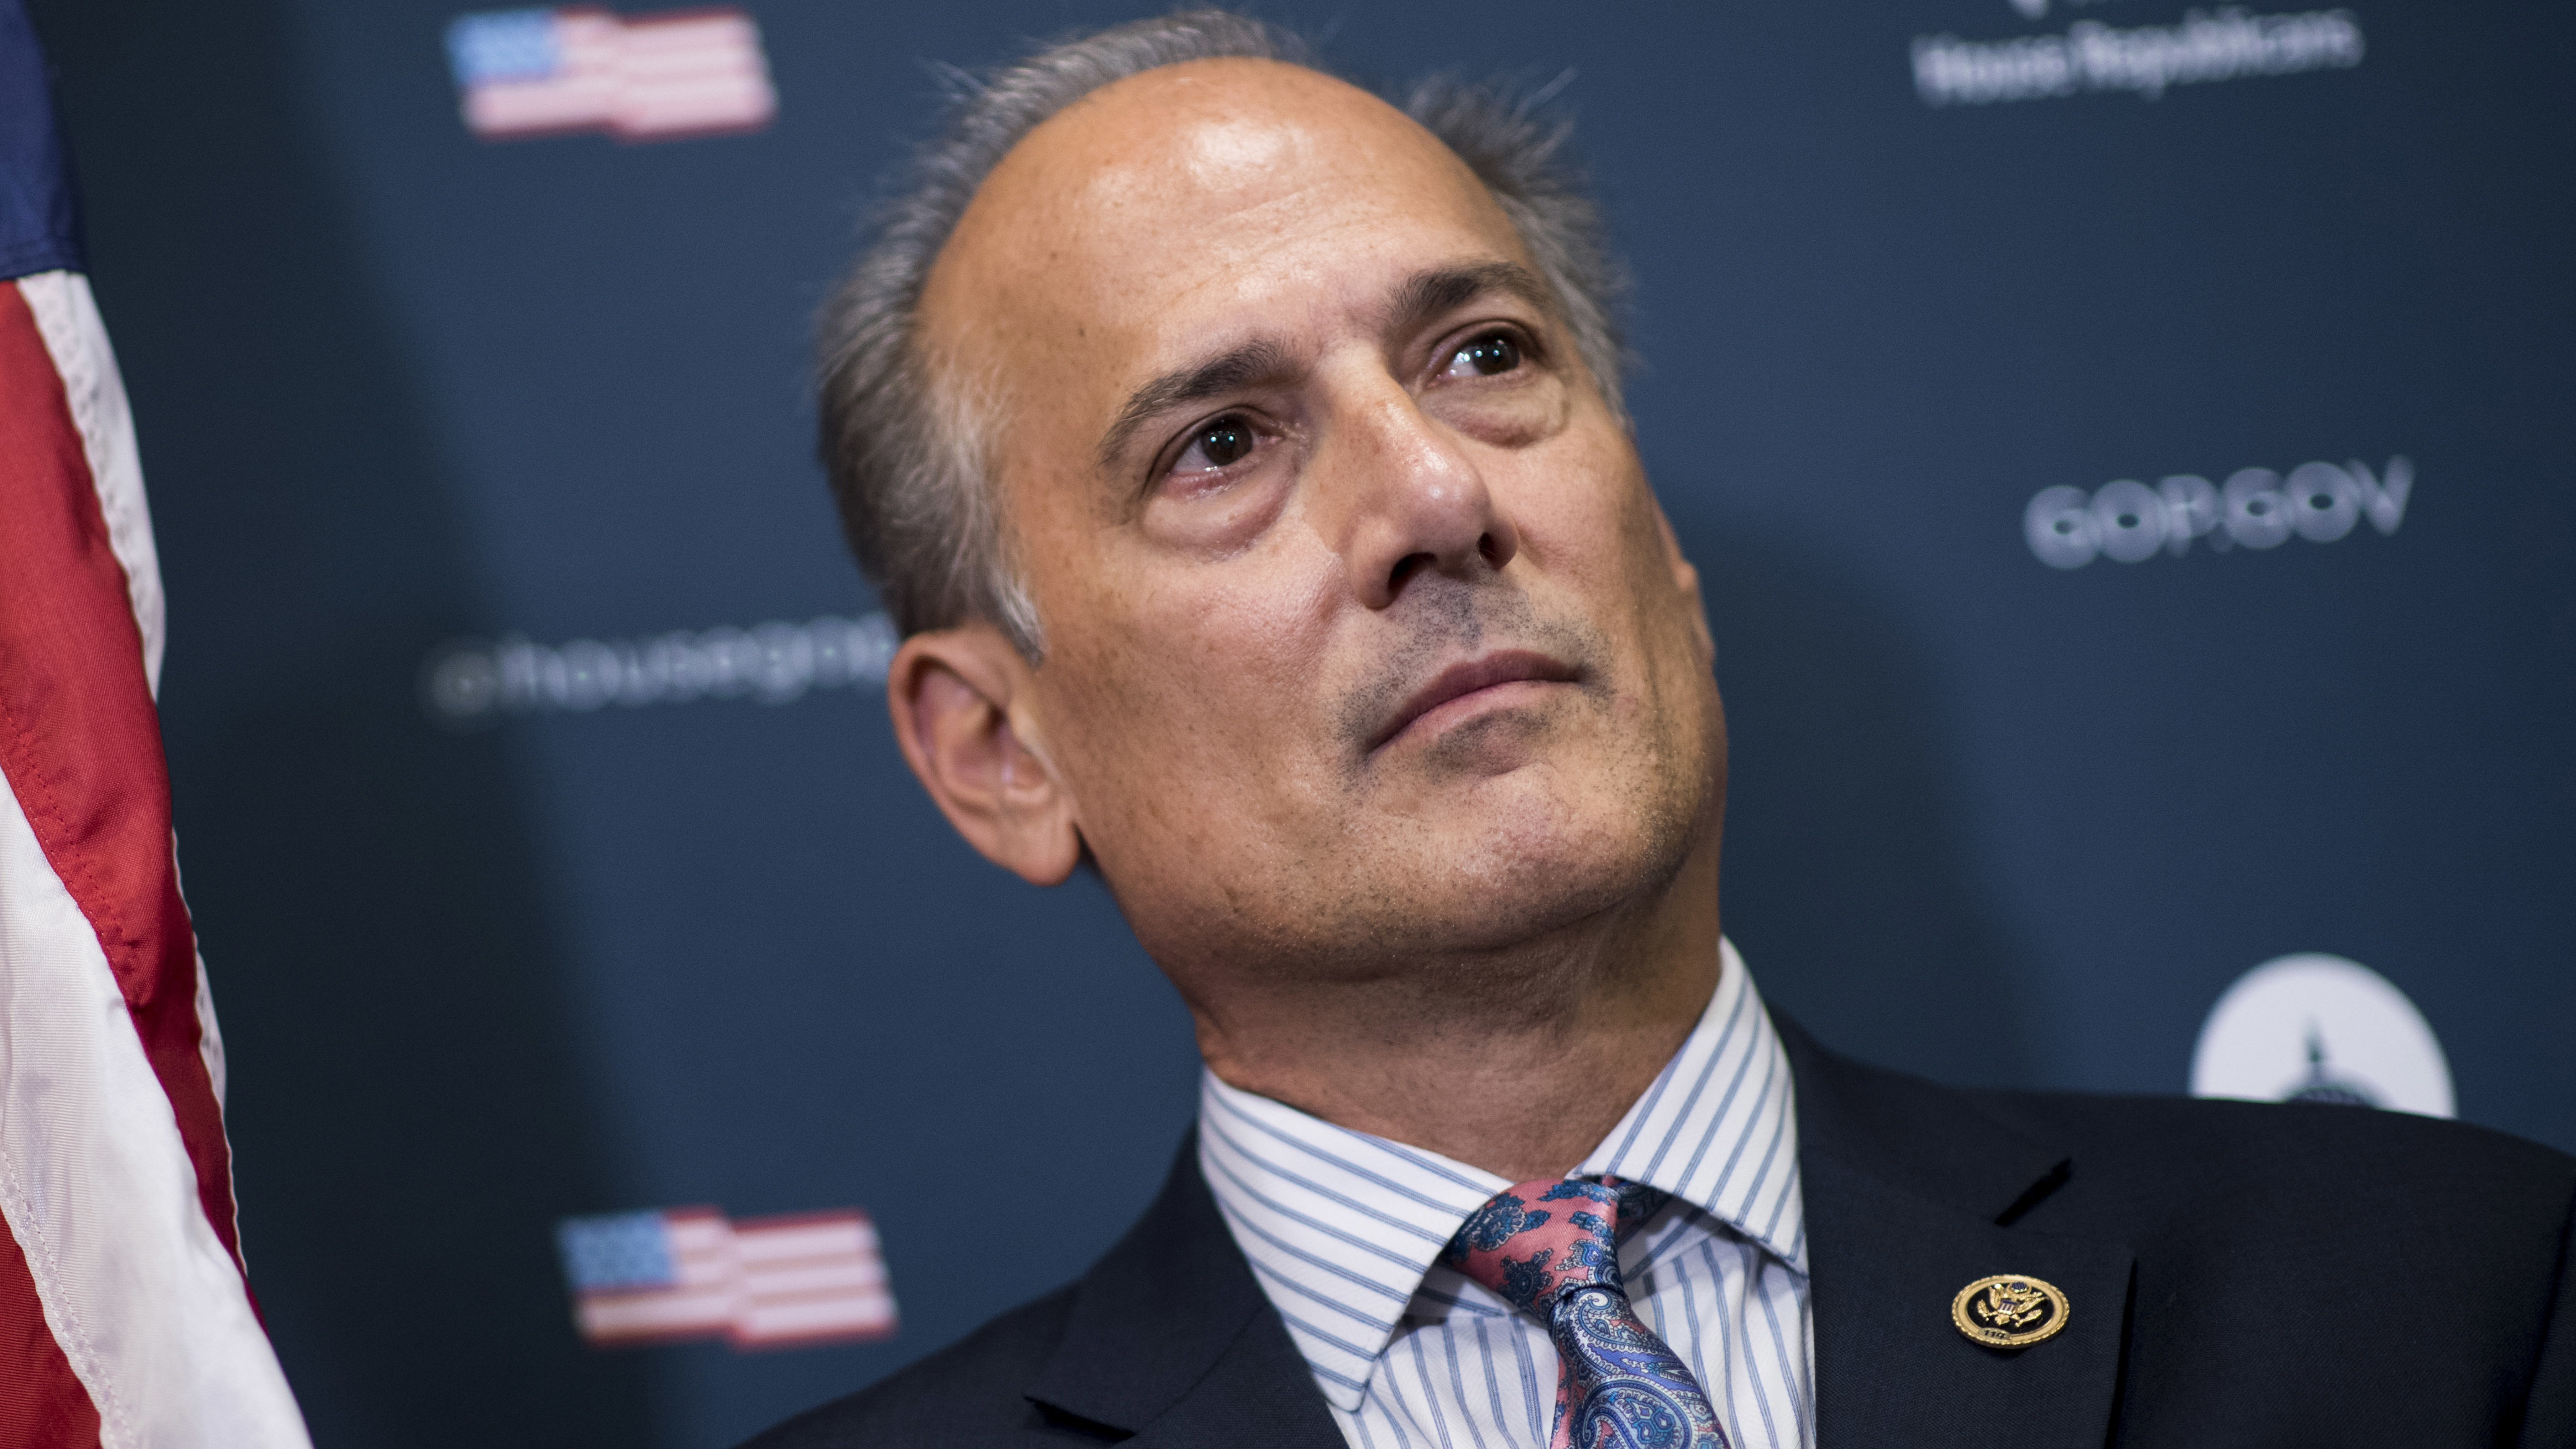 Tom Marino, Trump's Pick As Drug Czar, Withdraws After Damaging Opioid Report